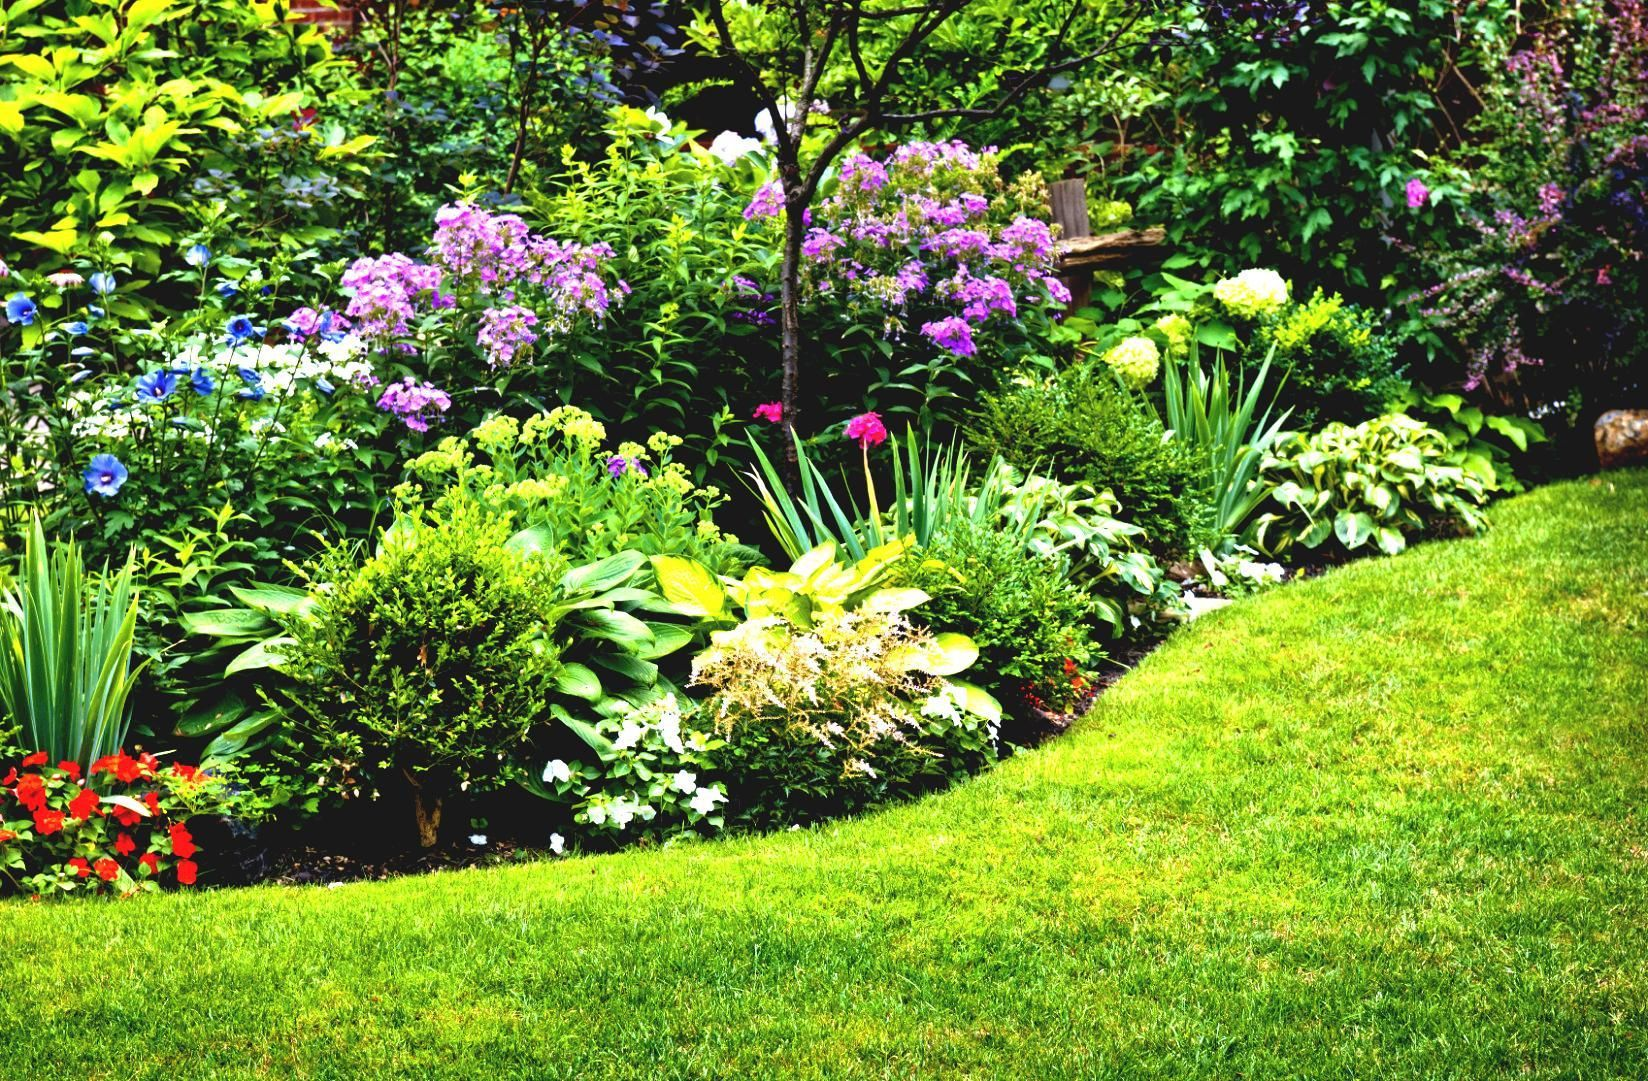 Amazing Perennial Garden Ideas For Full Sun Gardening Plans Landing Flower Small  Bperennial Gardenb Design Tips Bb